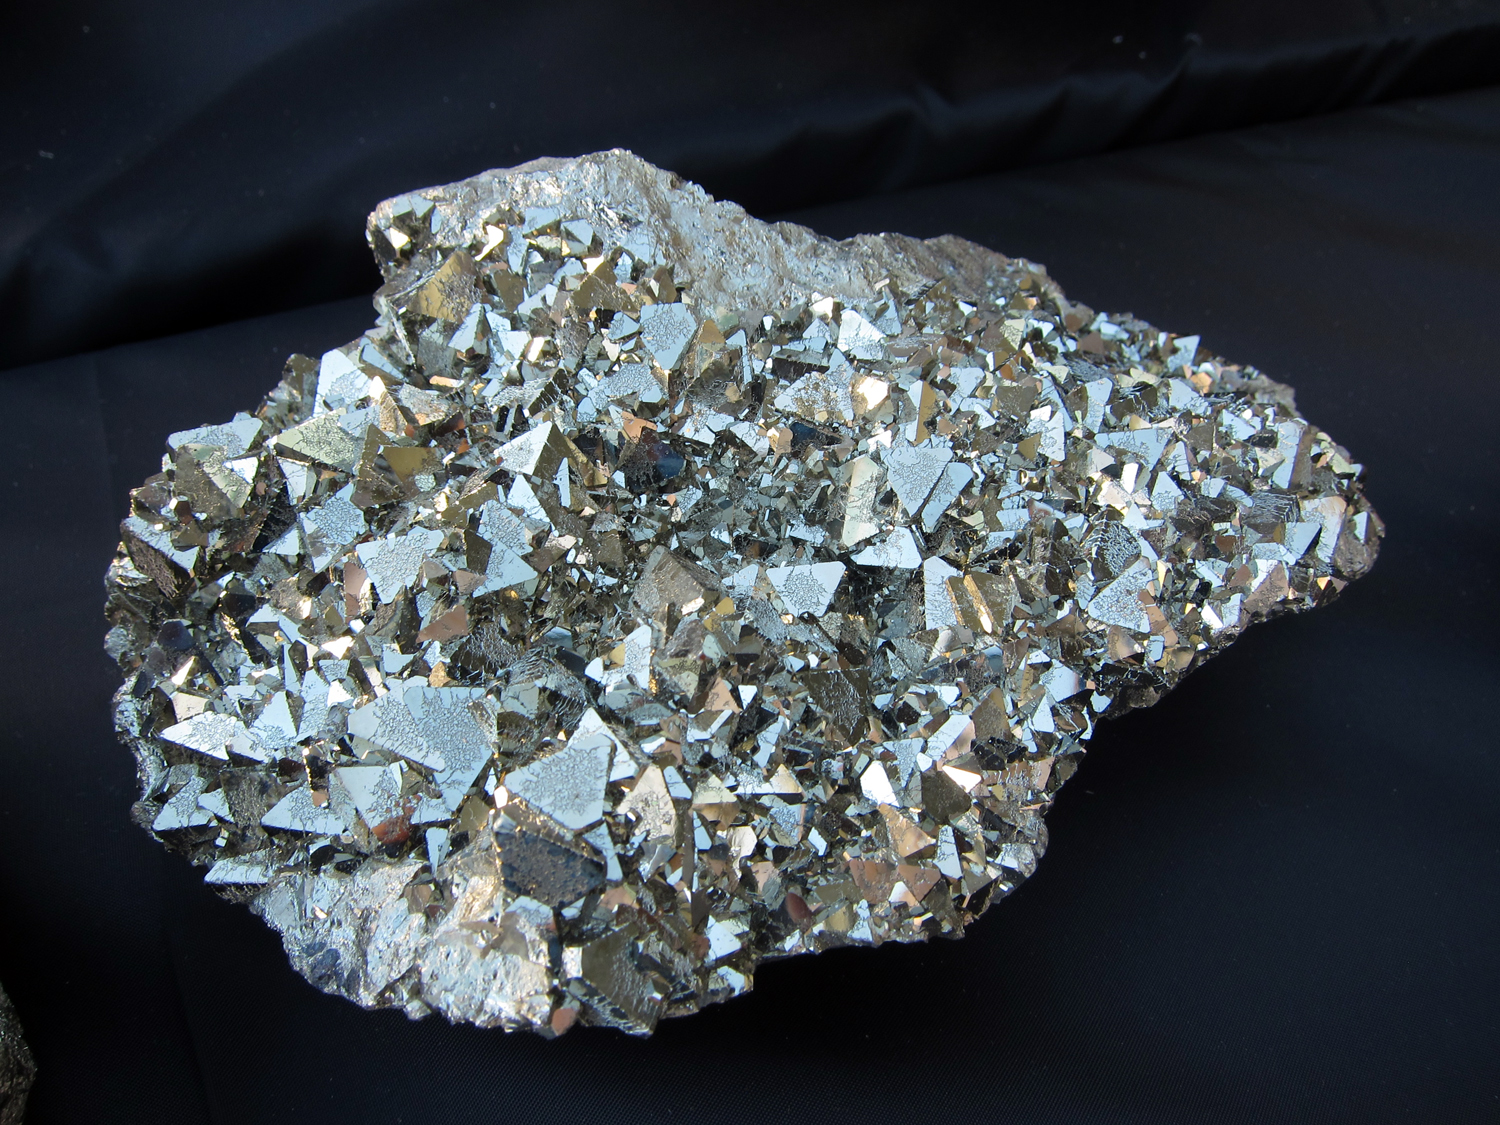 Pyrite is one of my favorite. The geometric, cubistic natural form of pyrite I find fascinating.